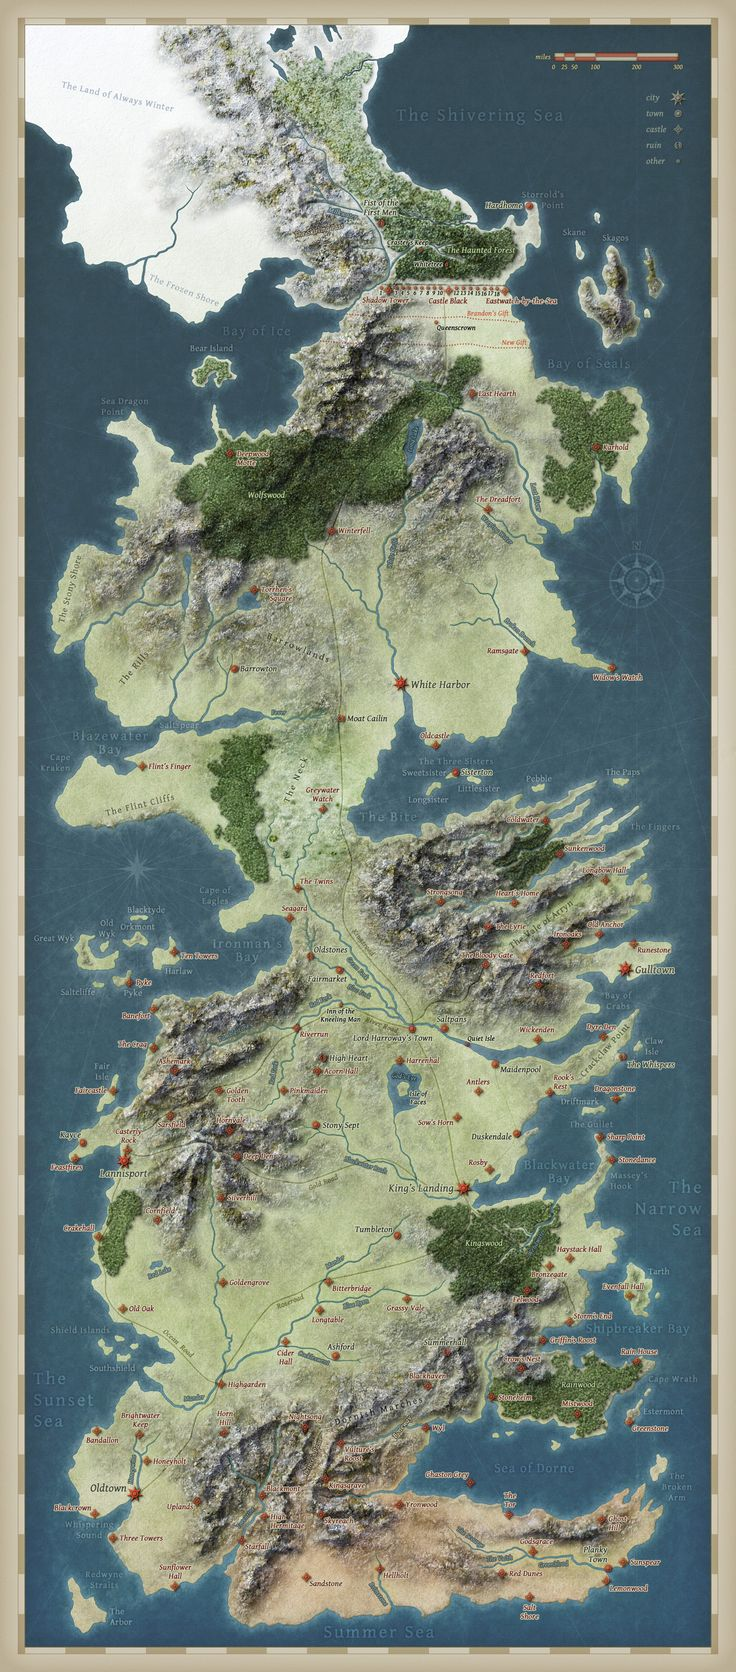 Westeros: Continent in which the series 'A Song of Ice & Fire' takes place. Or now more commonly known as 'Game of Thrones.'